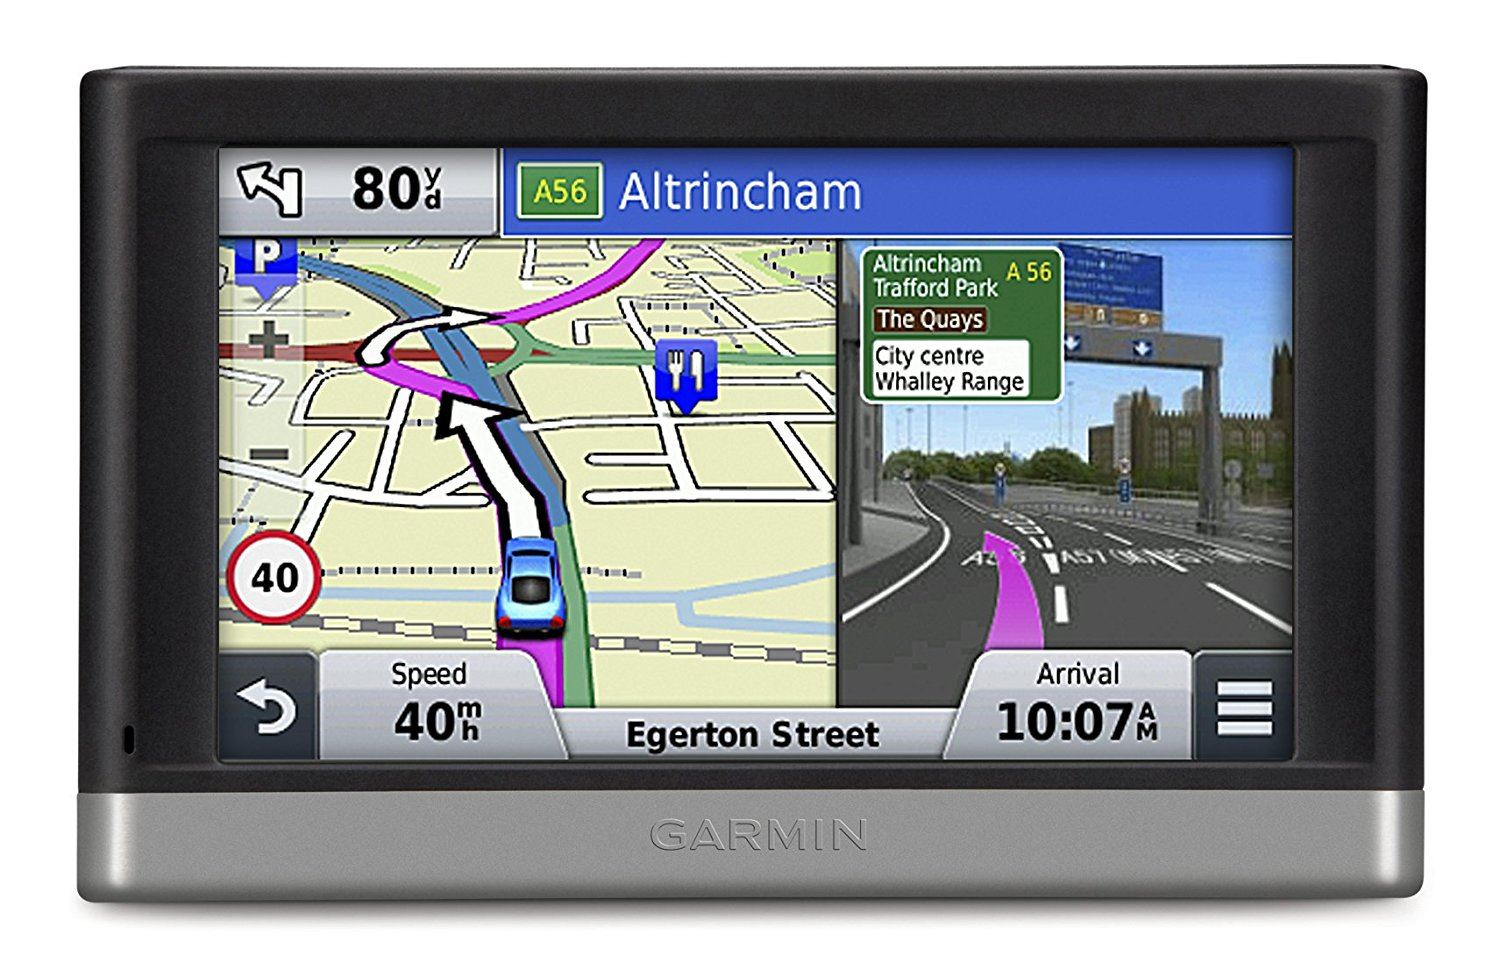 53c92dd0-8972-44da-8db3-823457be70af Sat Nav With Uk And Usa Maps on